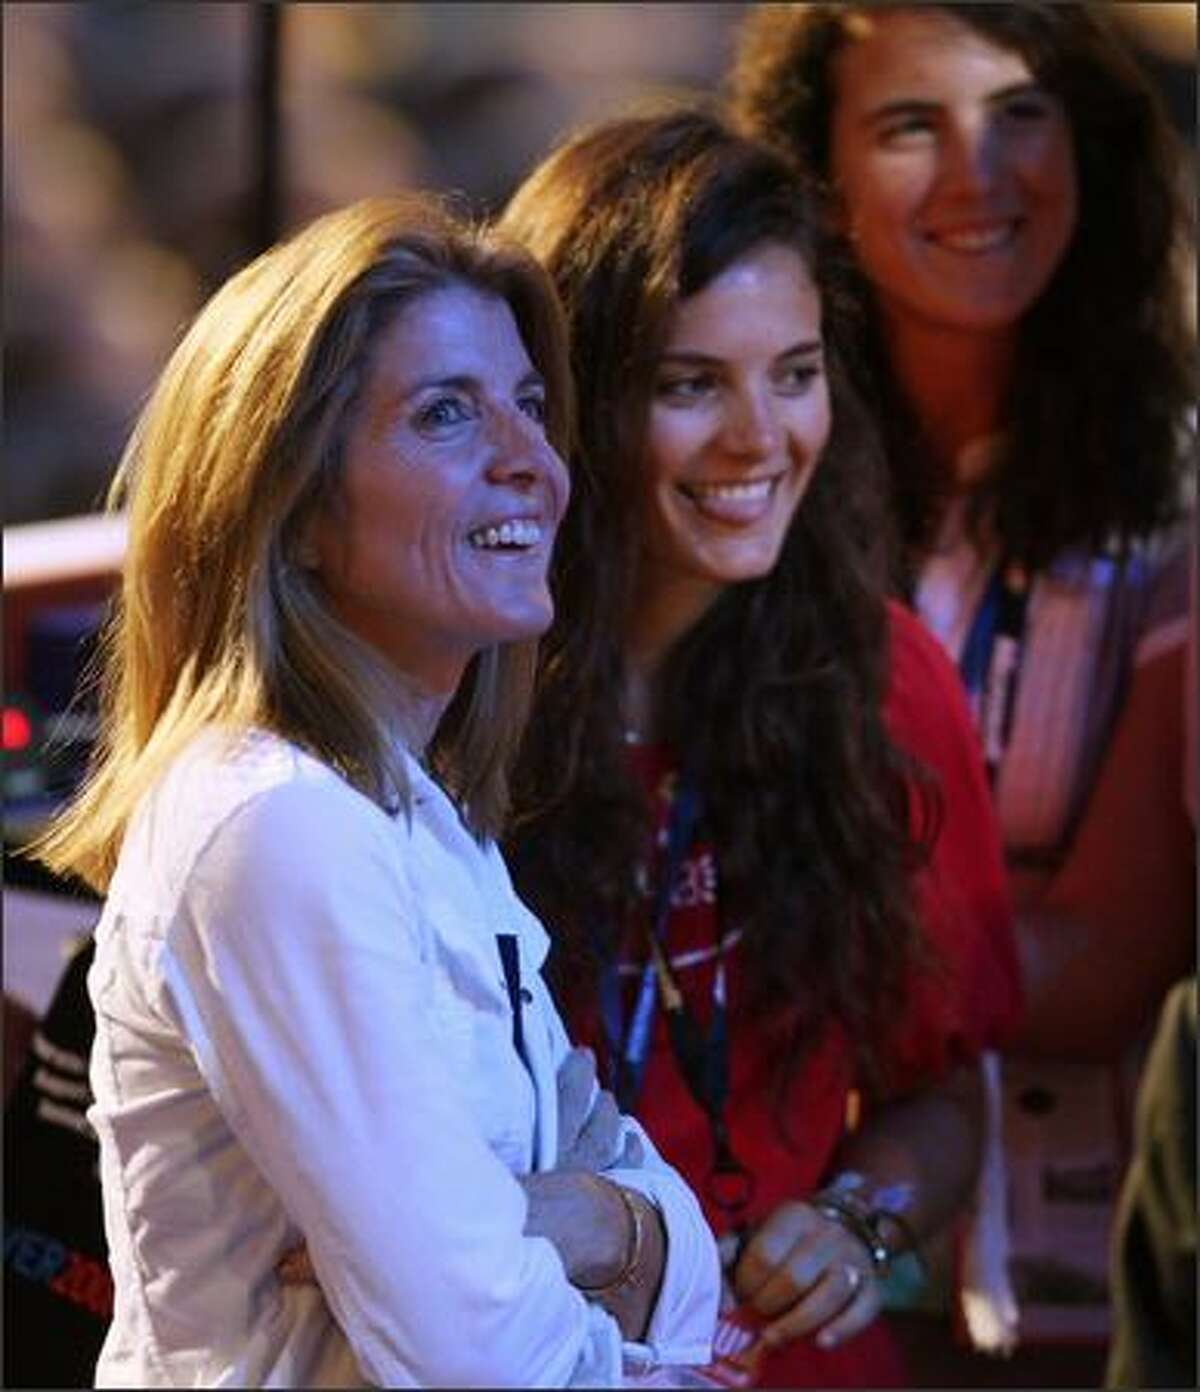 L to R) Caroline Kennedy Schlossberg and daughters Rose Schlossberg and Tatiana Schlossberg2 stand at the podium before the first session of day one of the Democratic National Convention (DNC) at the Pepsi Center on Monday in Denver, Colo.